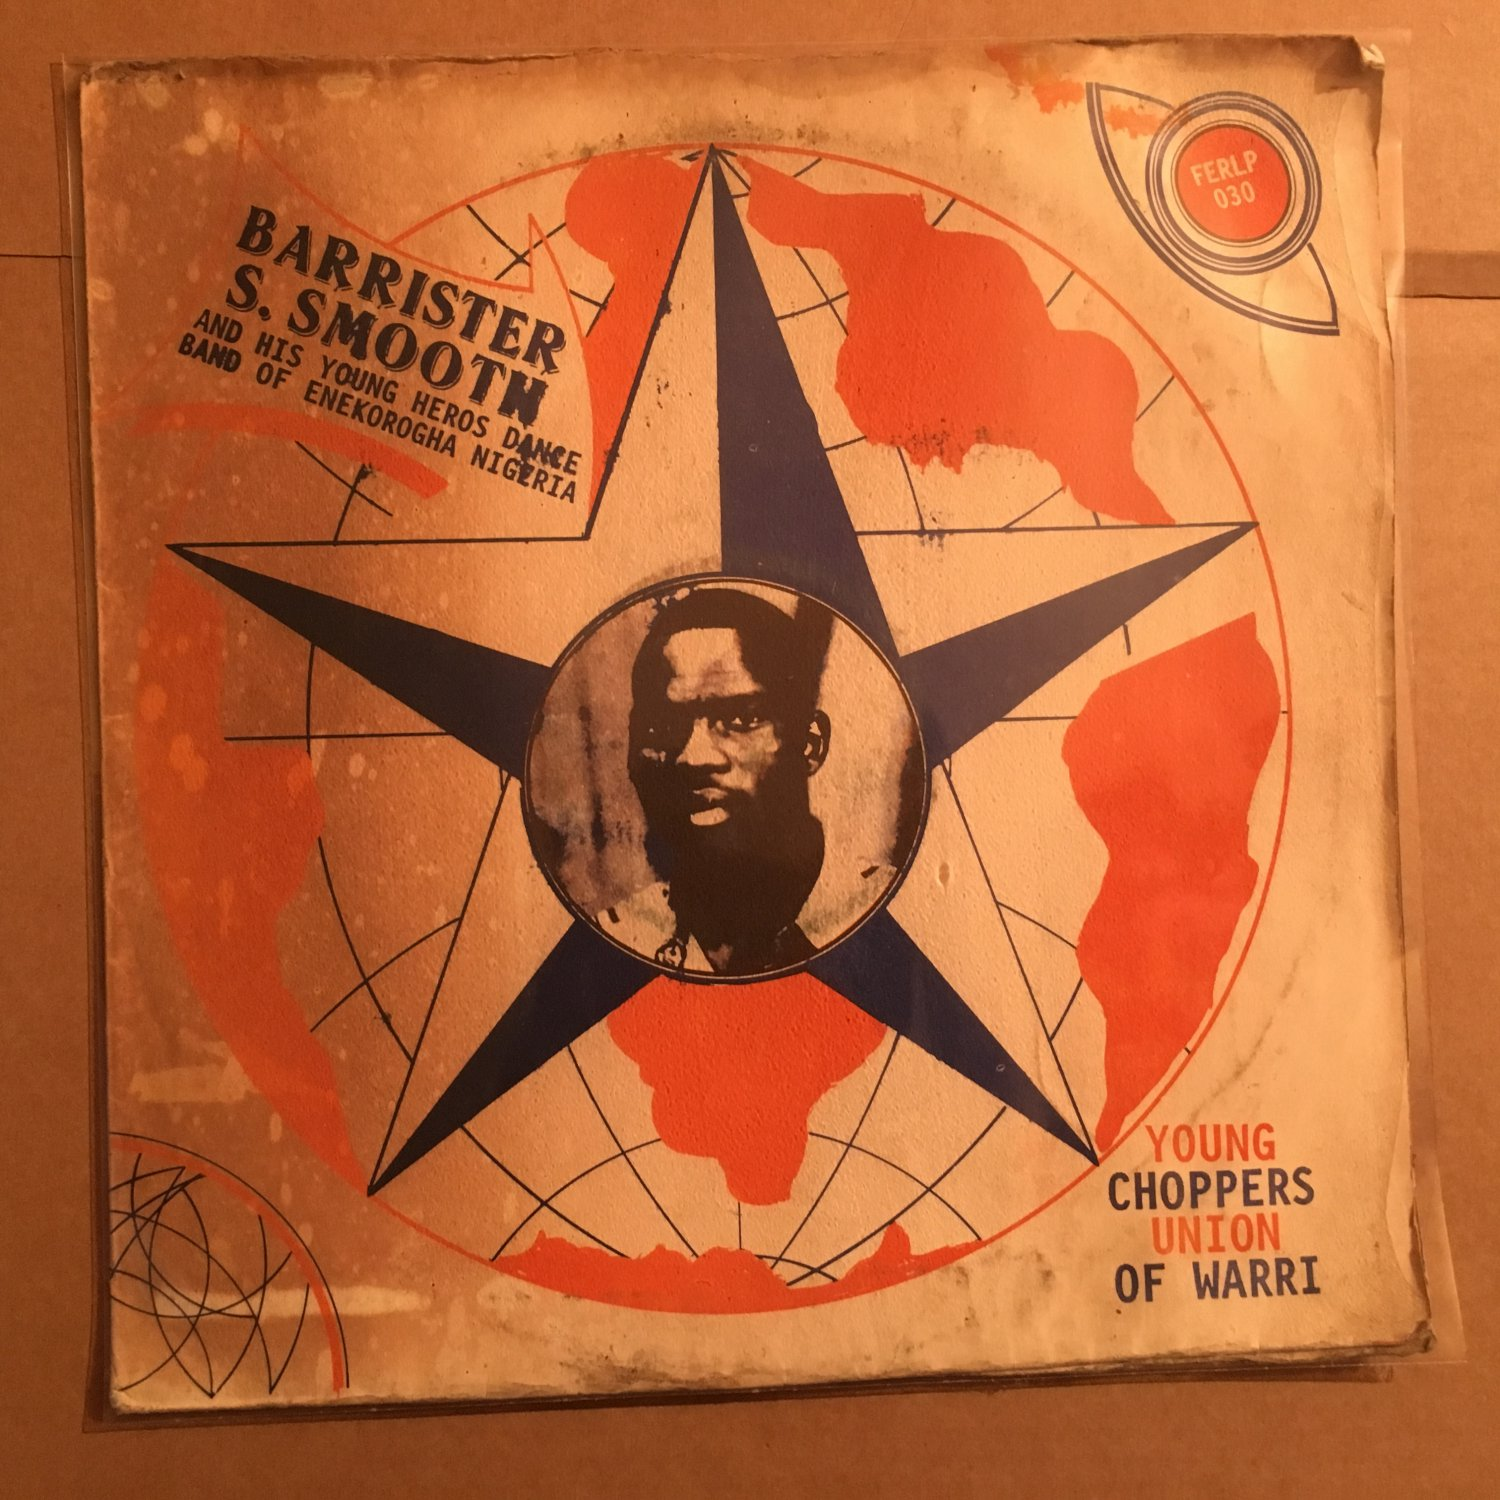 BARRISTER S. SMOOTH & HIS YOUNG HEROS LP young choppers union of warri NIGERIA HIGHLIFE mp3 LISTEN